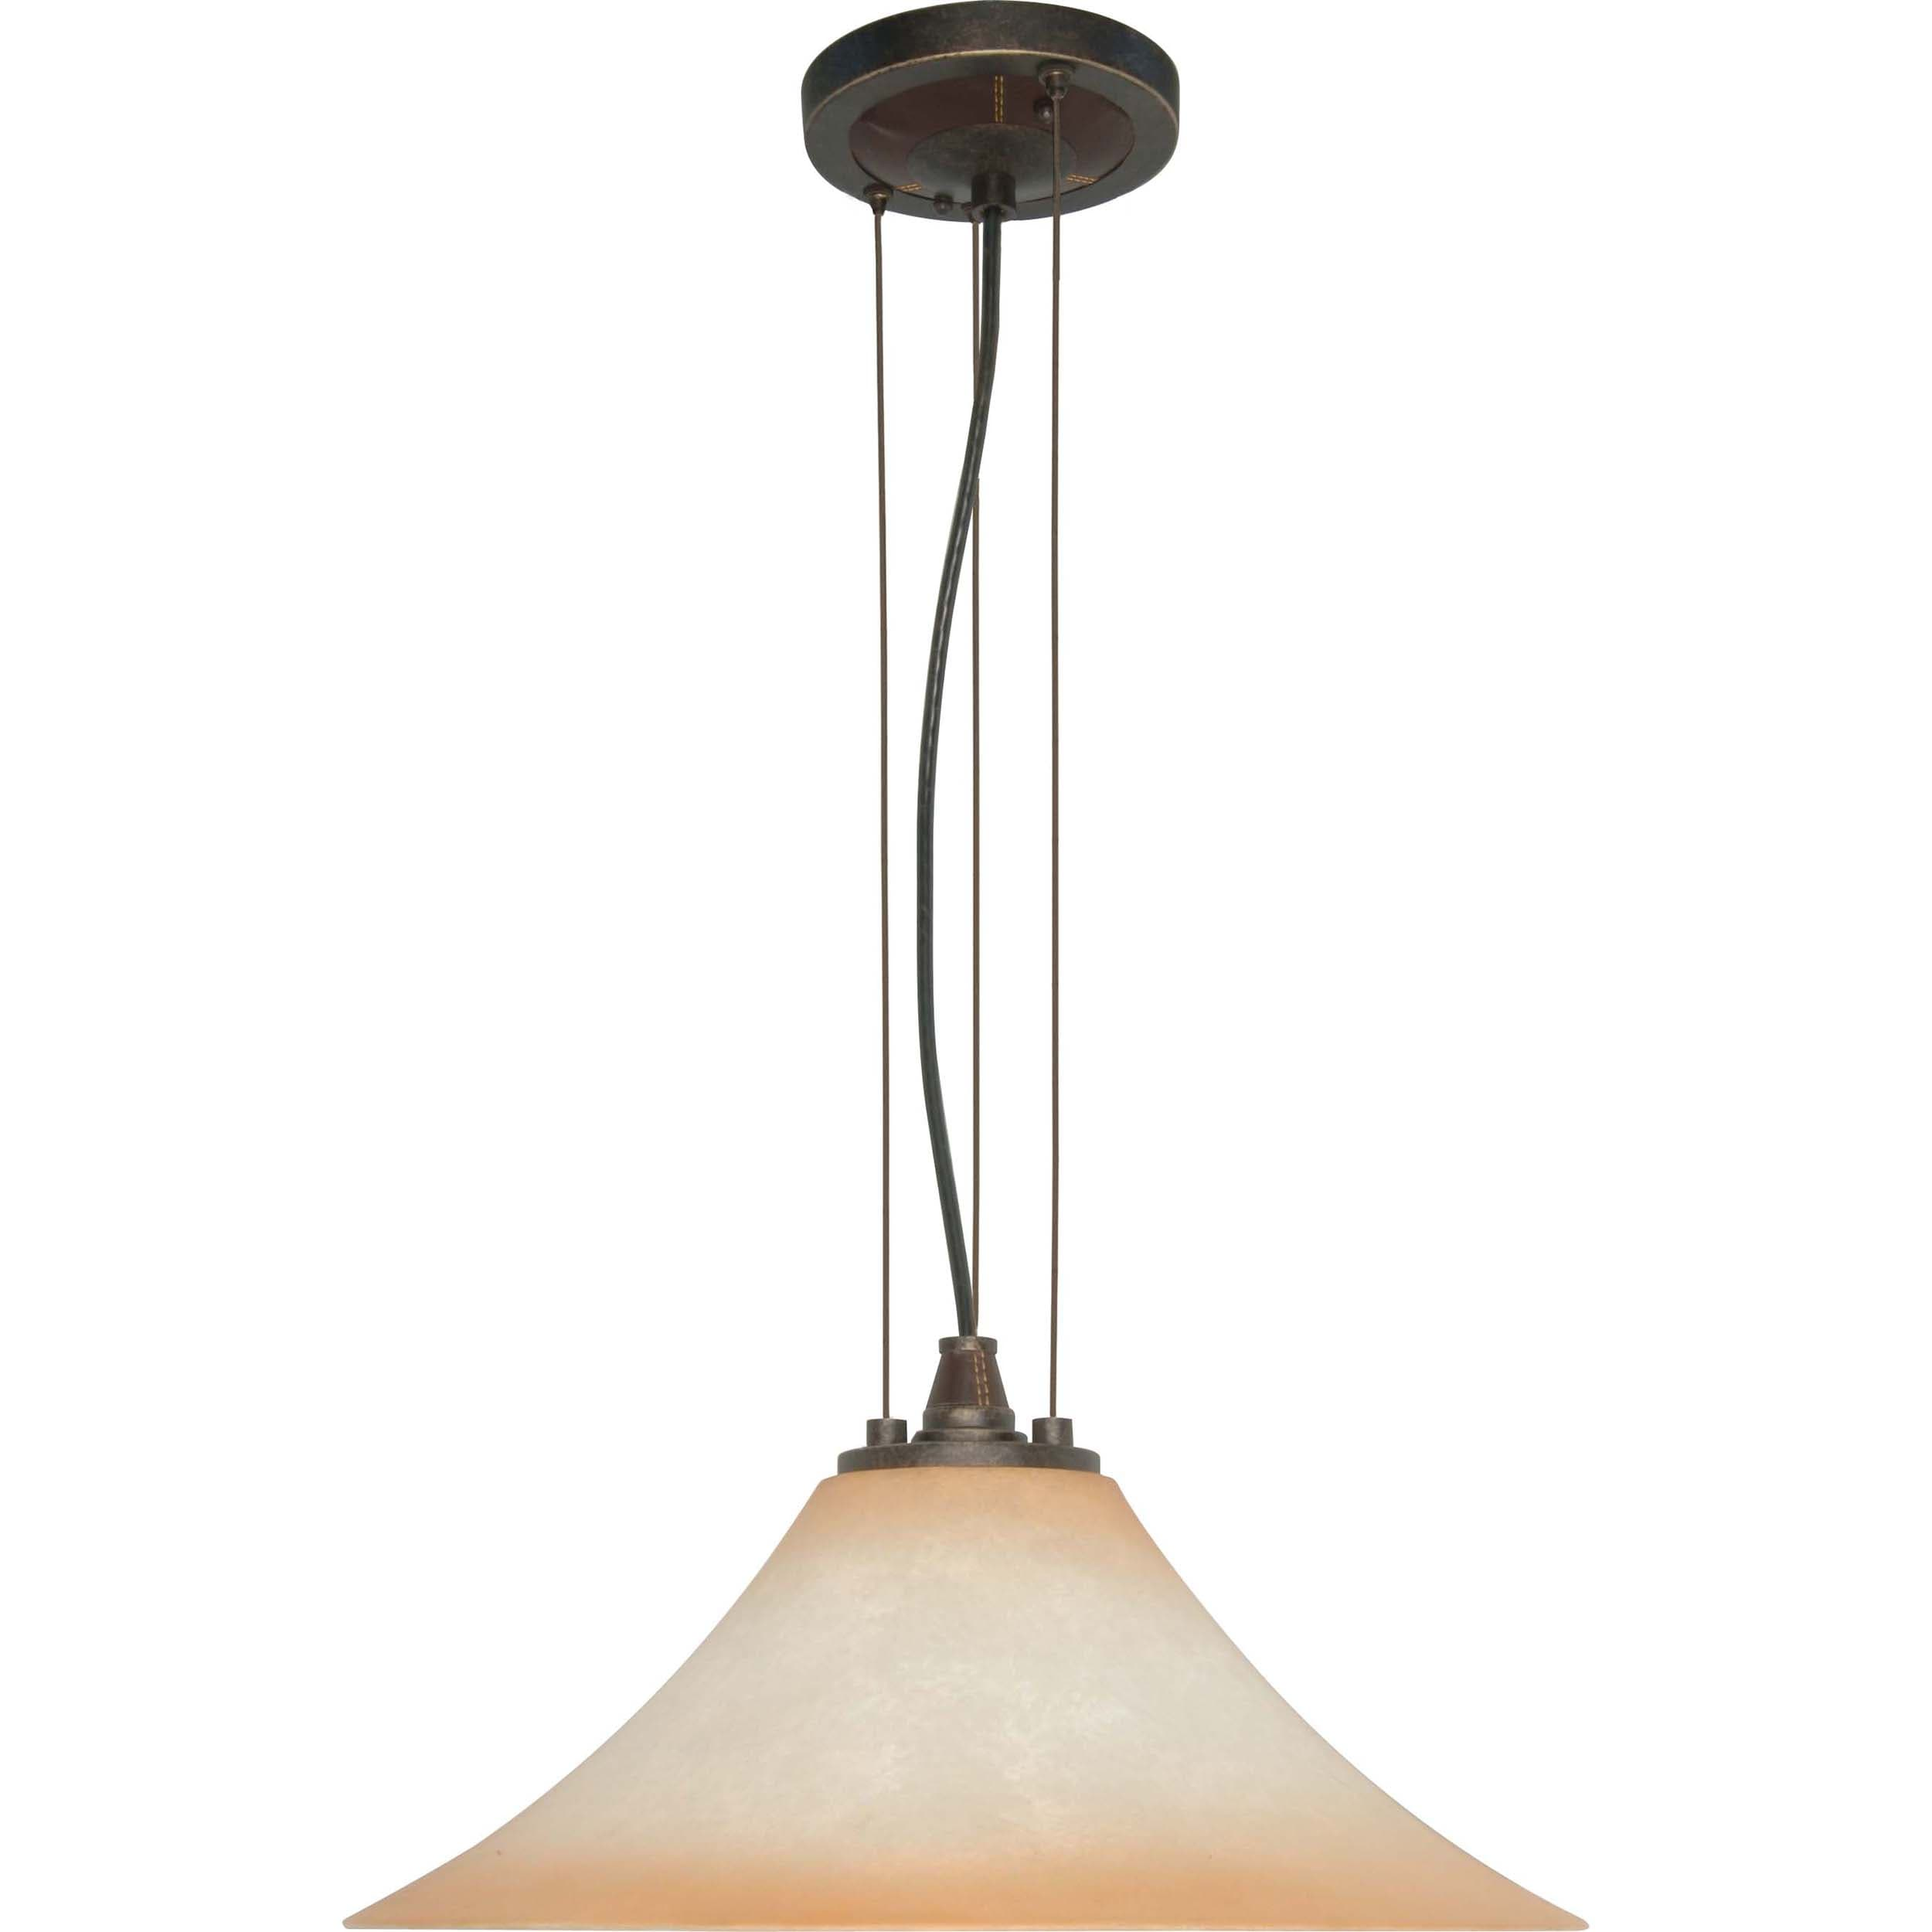 Viceroy 1-light Golden Umber With Burnt Sienna Glass Energy Star Pendant